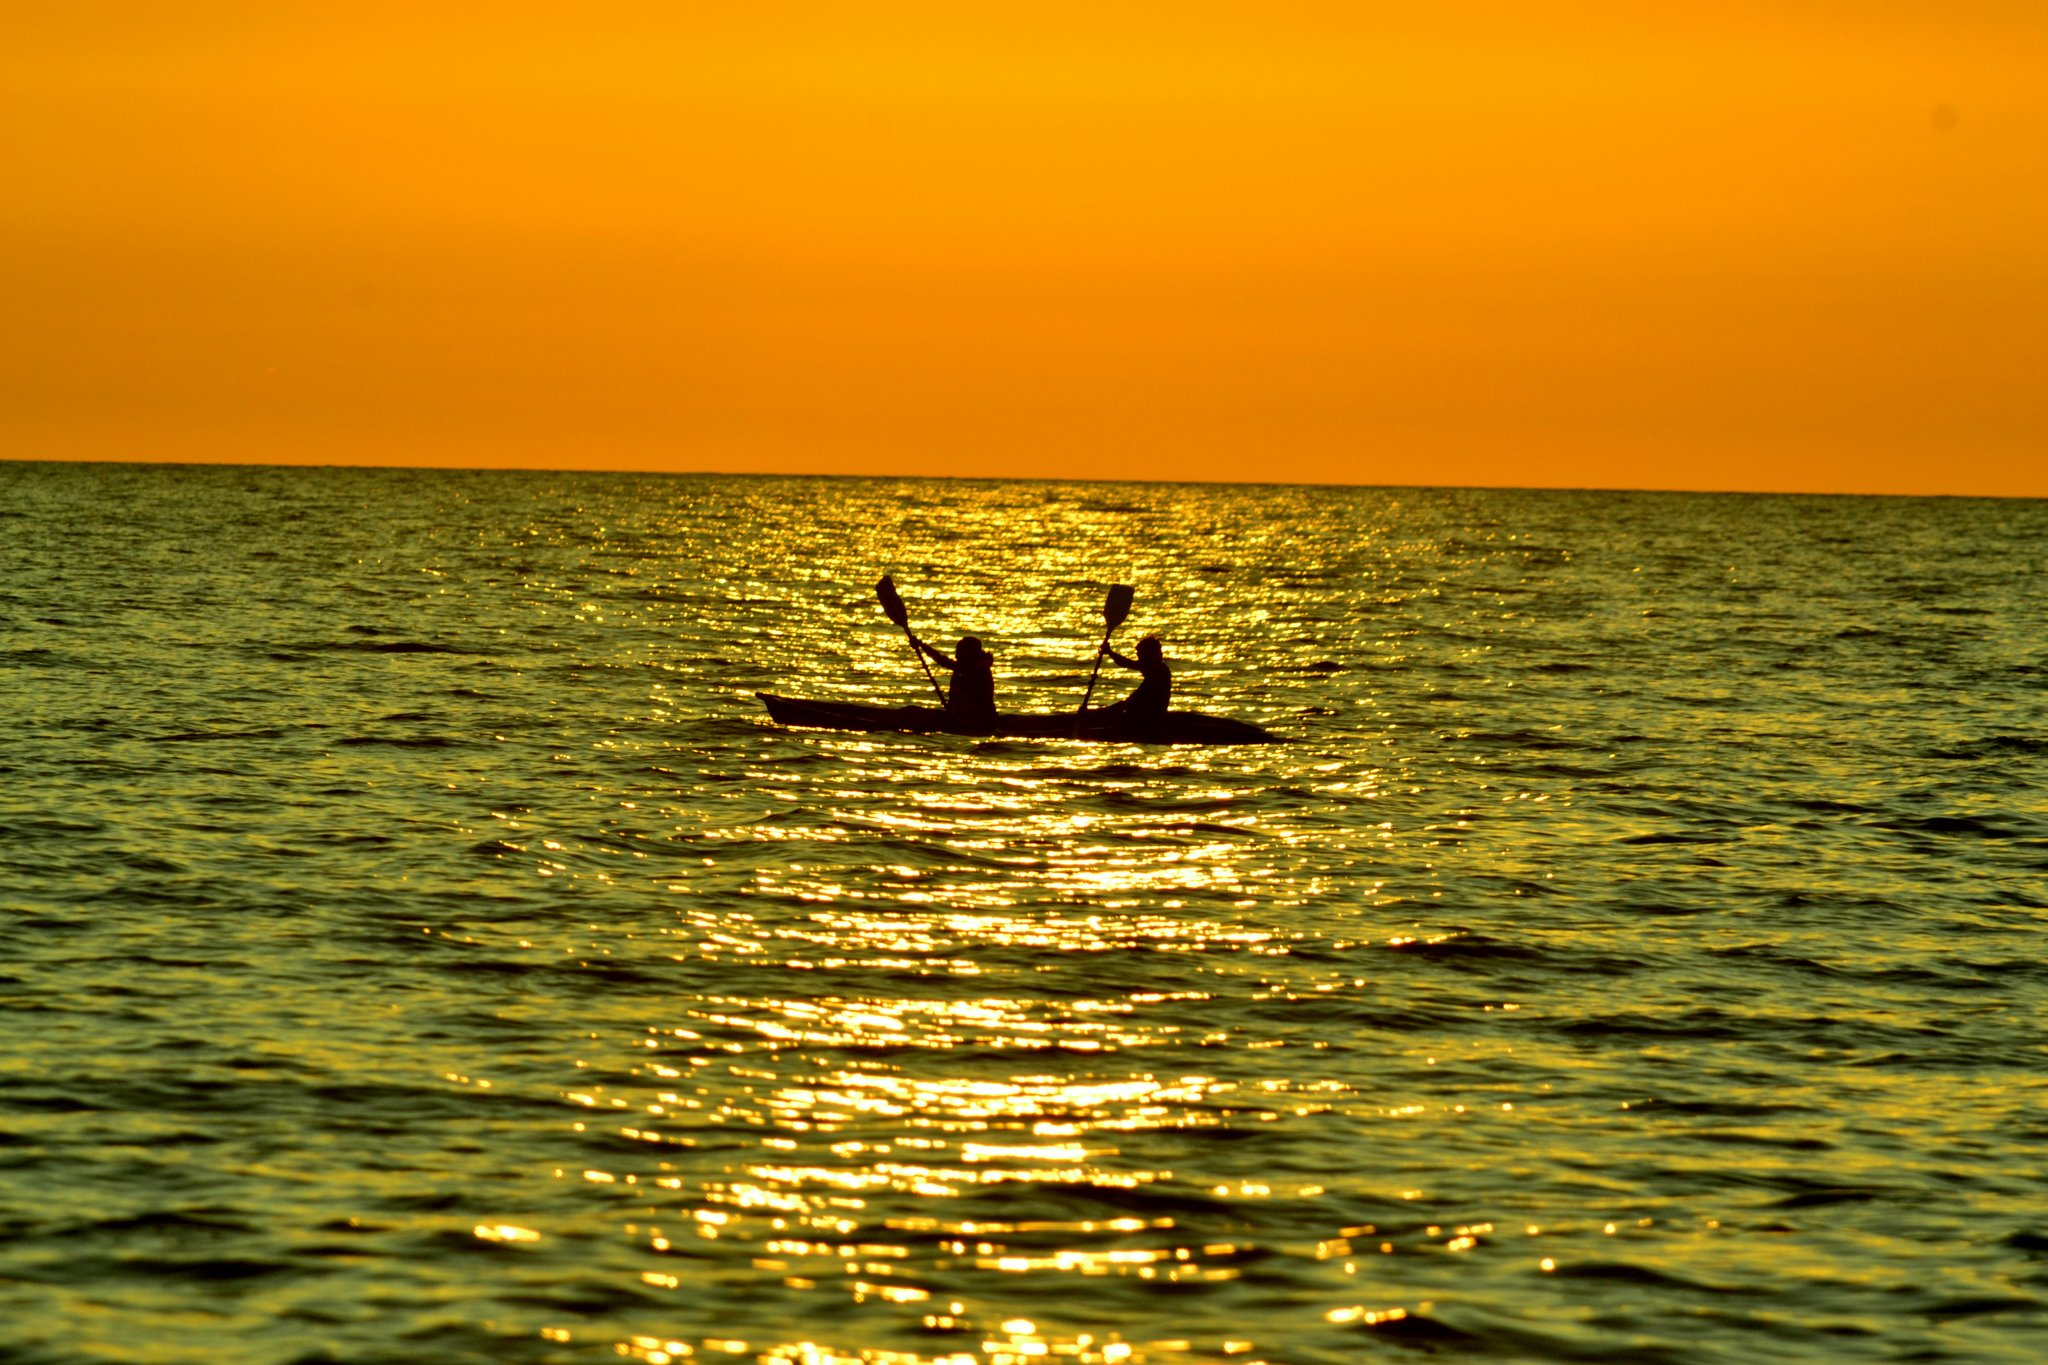 Kayaking into the sunset-Palolem(Goa-India)